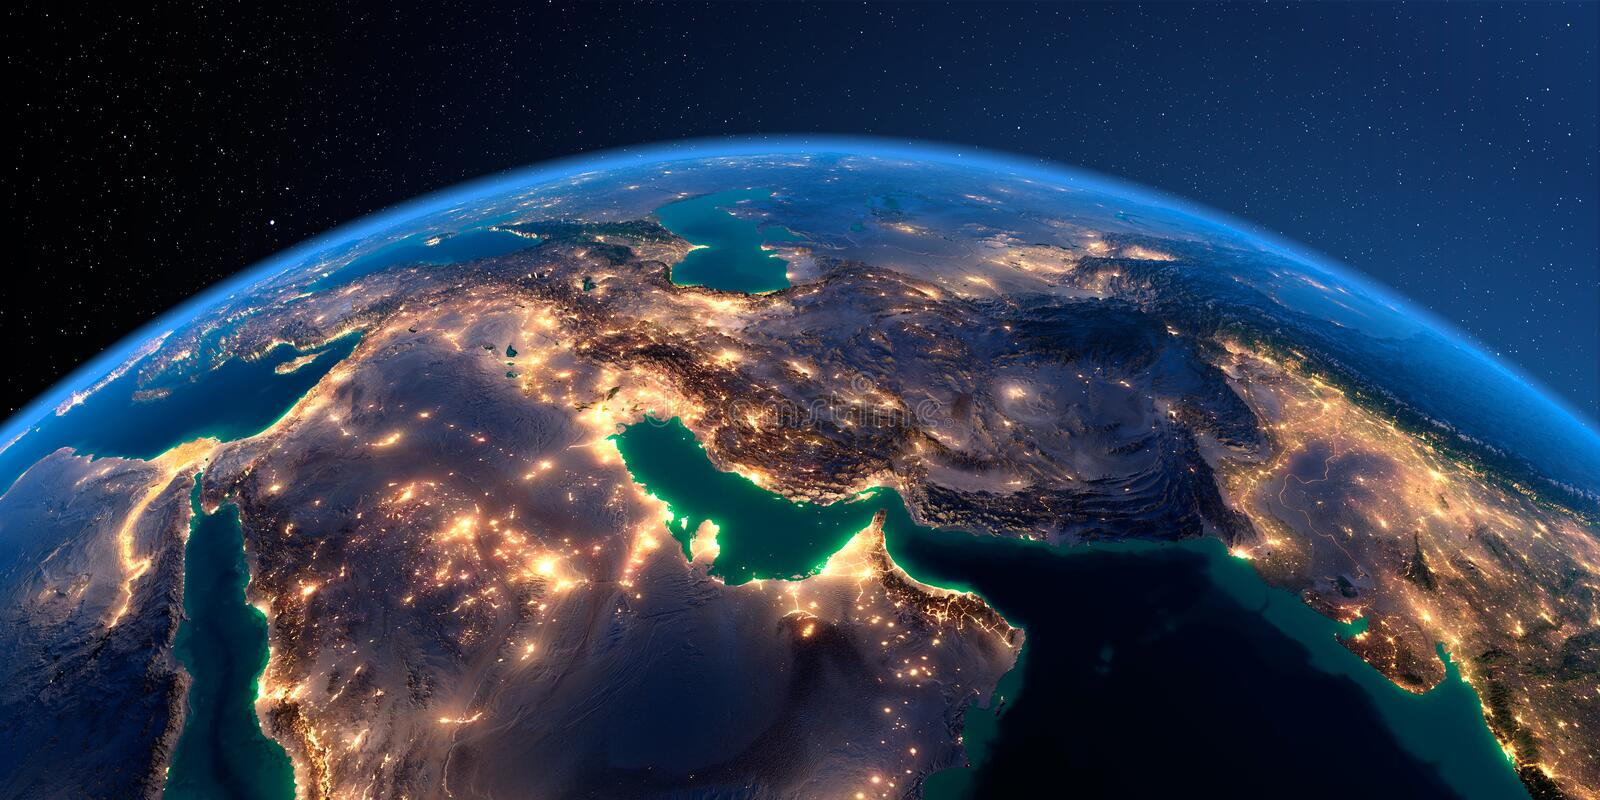 Detailed Earth. Persian Gulf on a moonlit night stock illustration